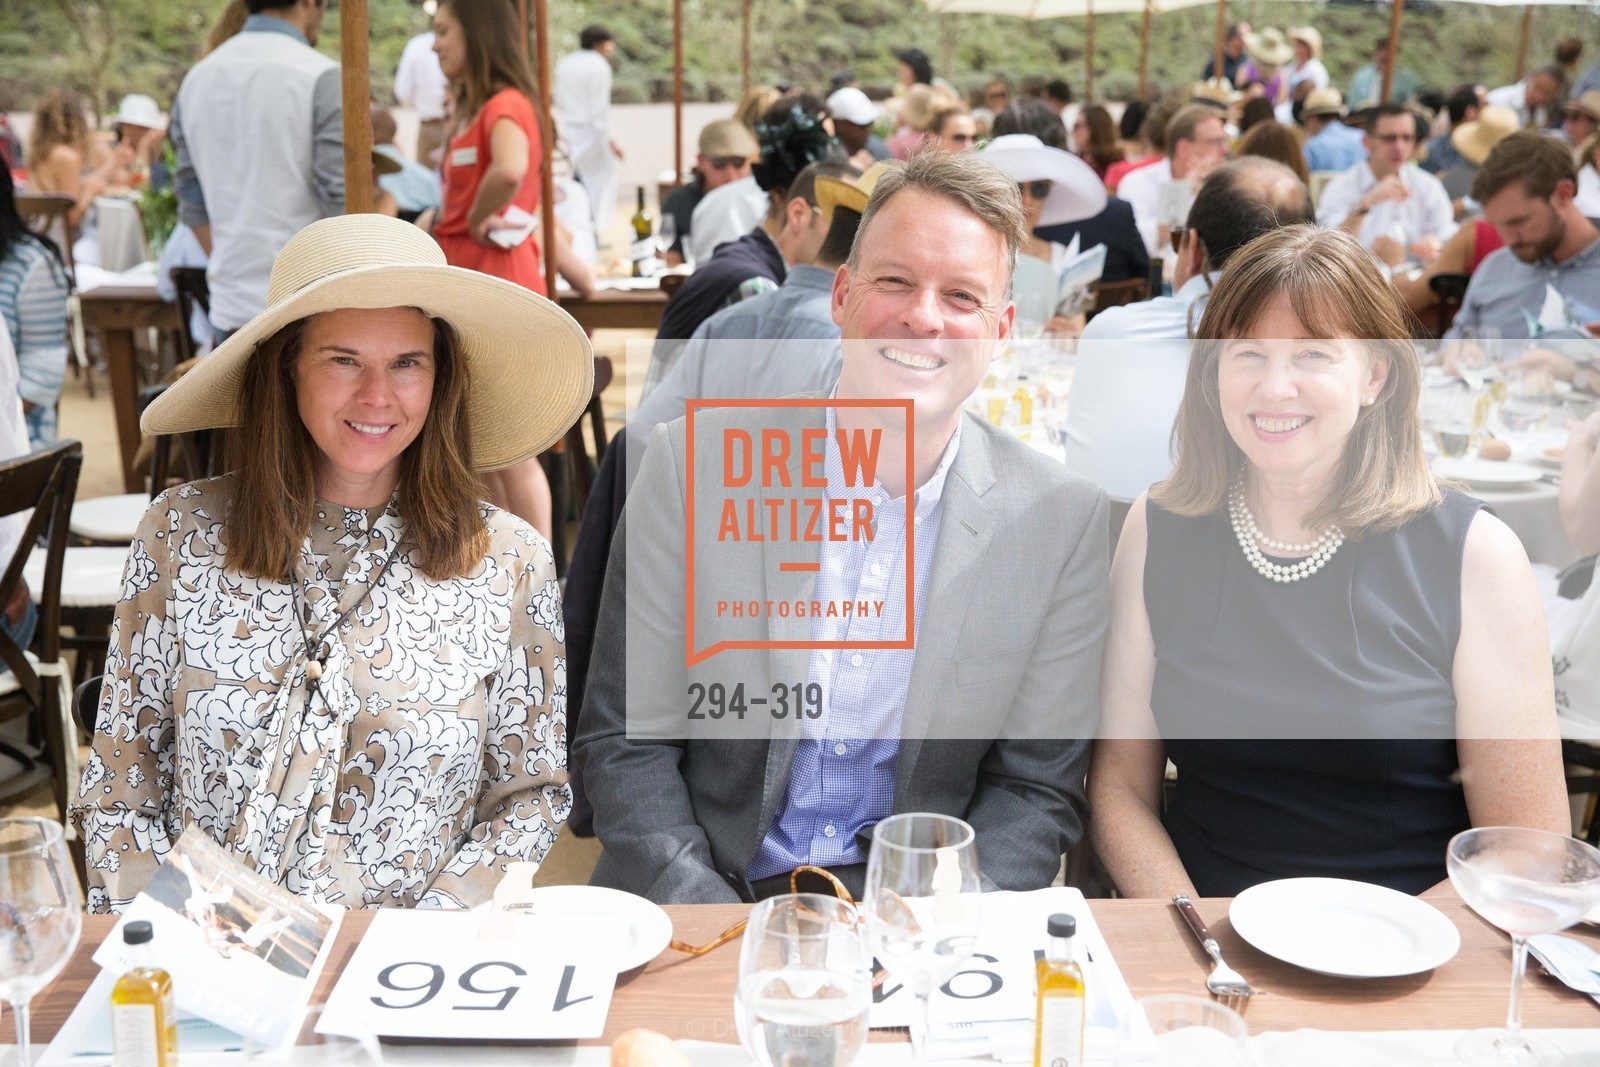 Janelle Hobart, Nate Taylor, Leslie Berriman, Fall for Art: ODC at McEvoy Ranch, McEvoy Ranch. 5935 Red Hill Road, September 27th, 2015,Drew Altizer, Drew Altizer Photography, full-service agency, private events, San Francisco photographer, photographer california